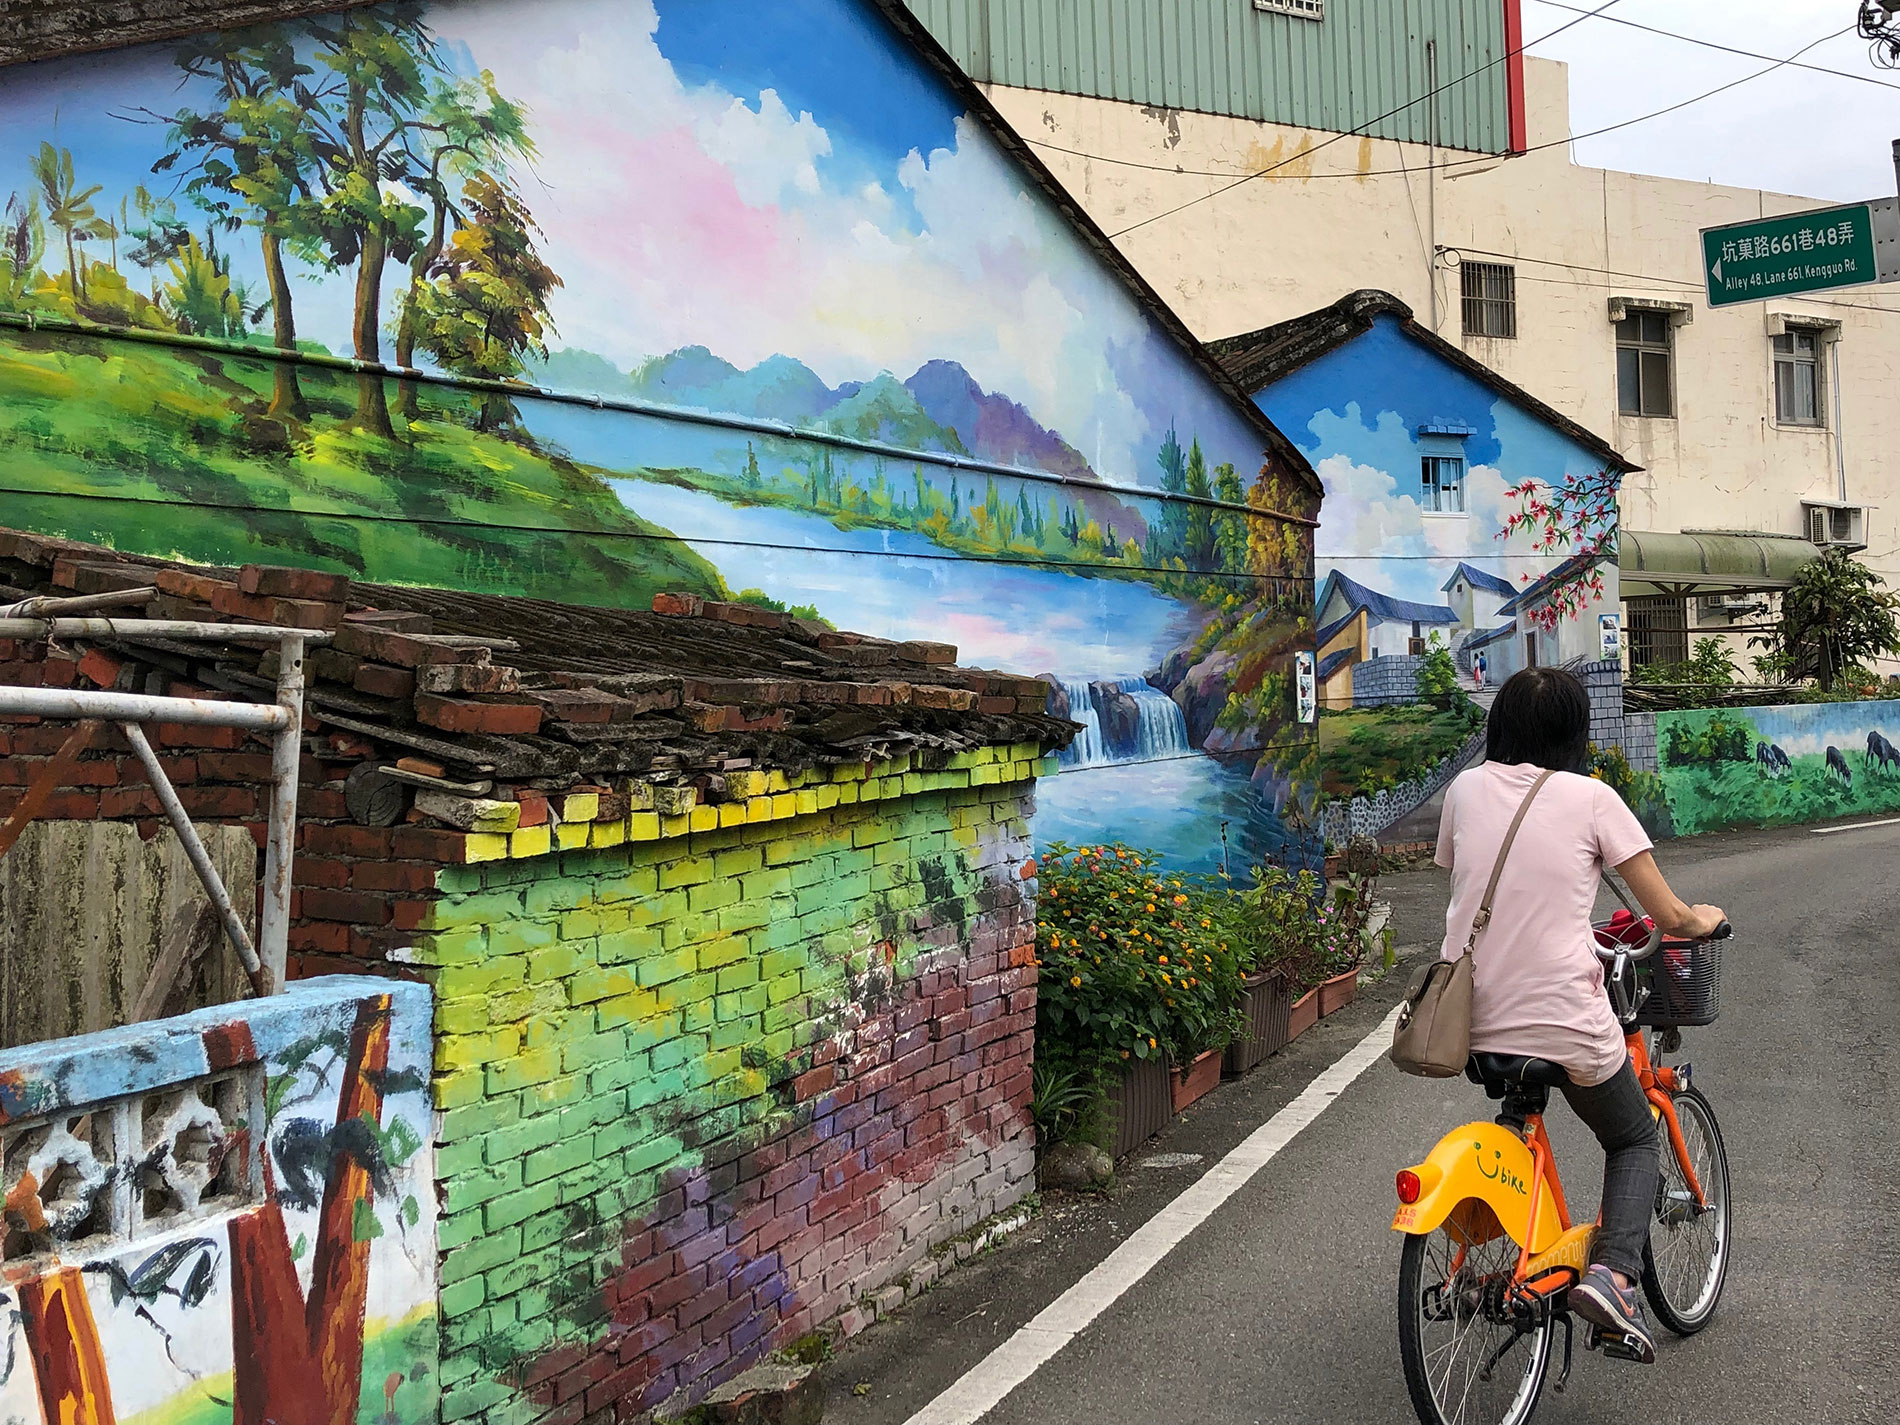 A mural from Kengkou Community Painted Village, near Taoyuan, Taiwan